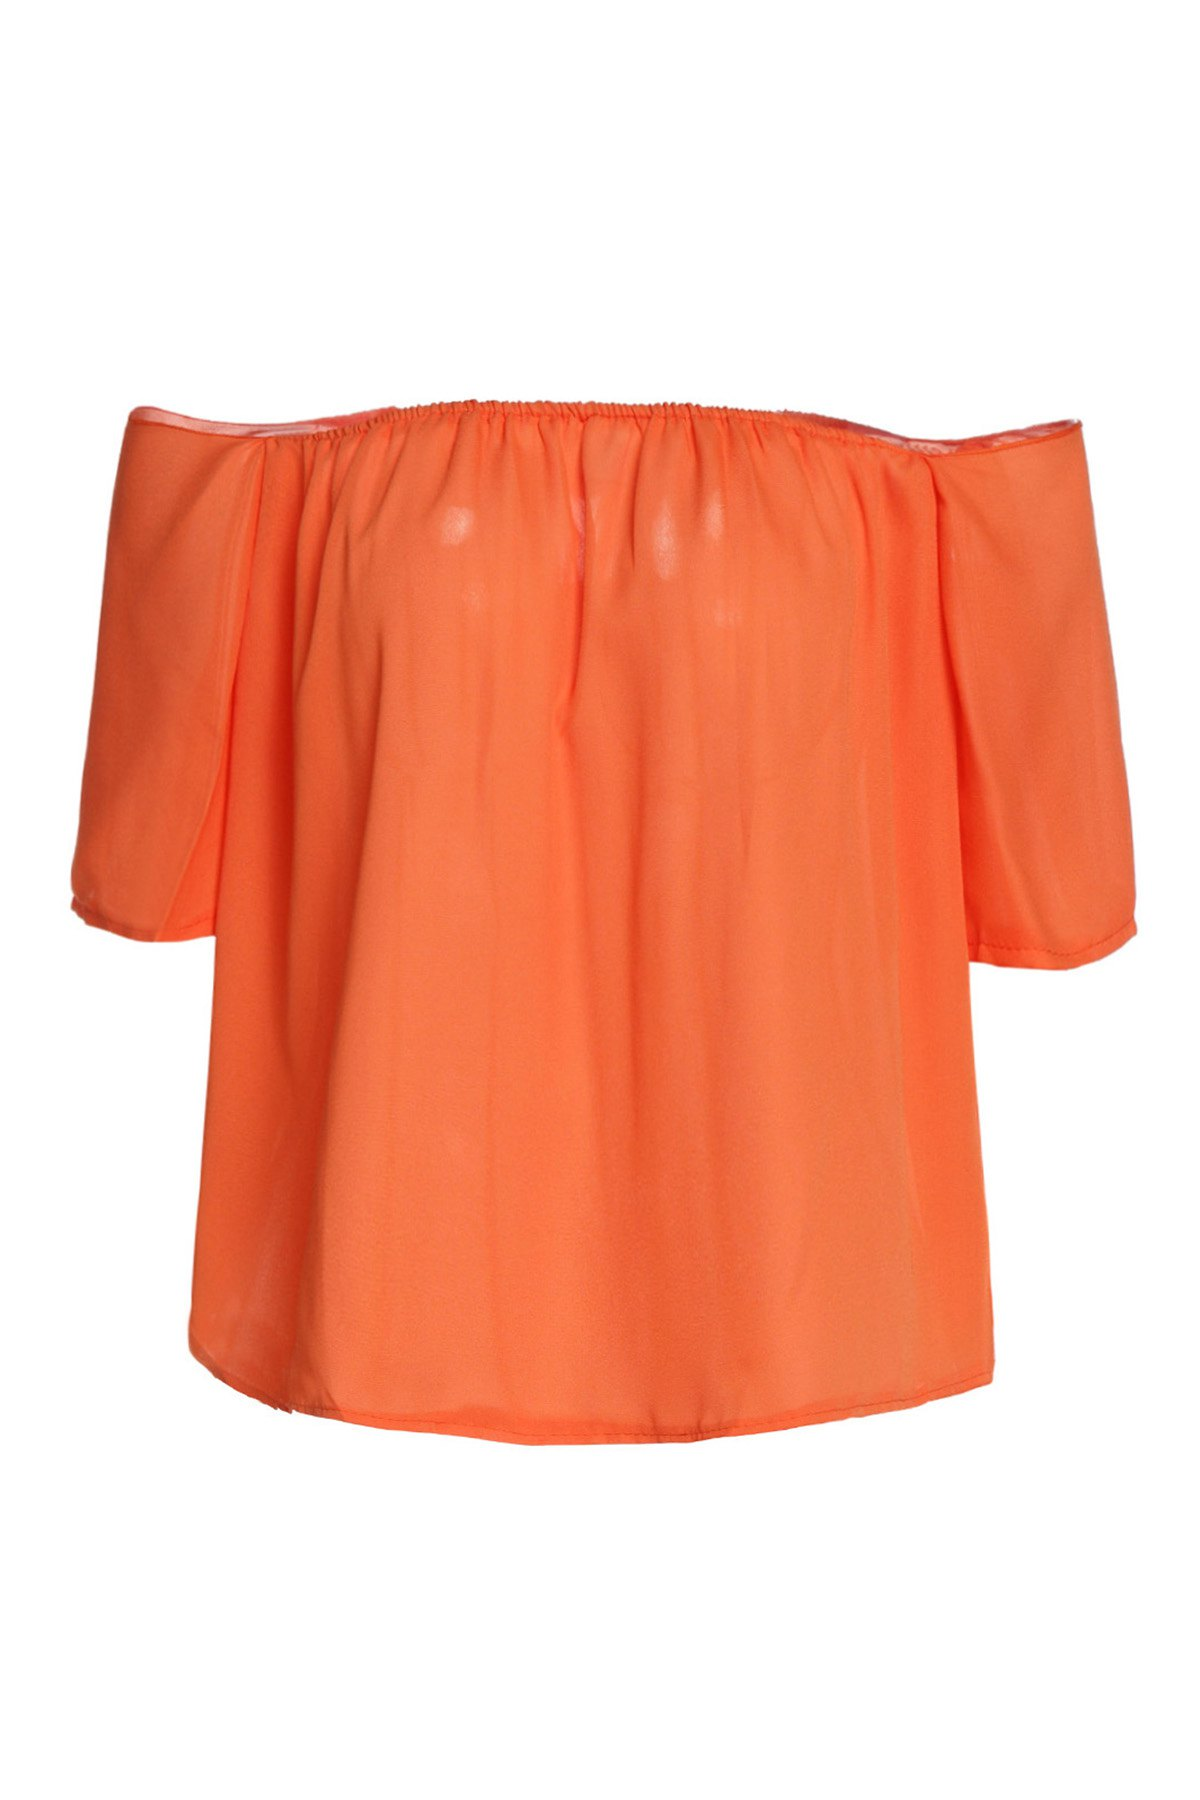 Sexy Off-The-Shoulder Solid Color Pleated Blouse For Women - JACINTH XL